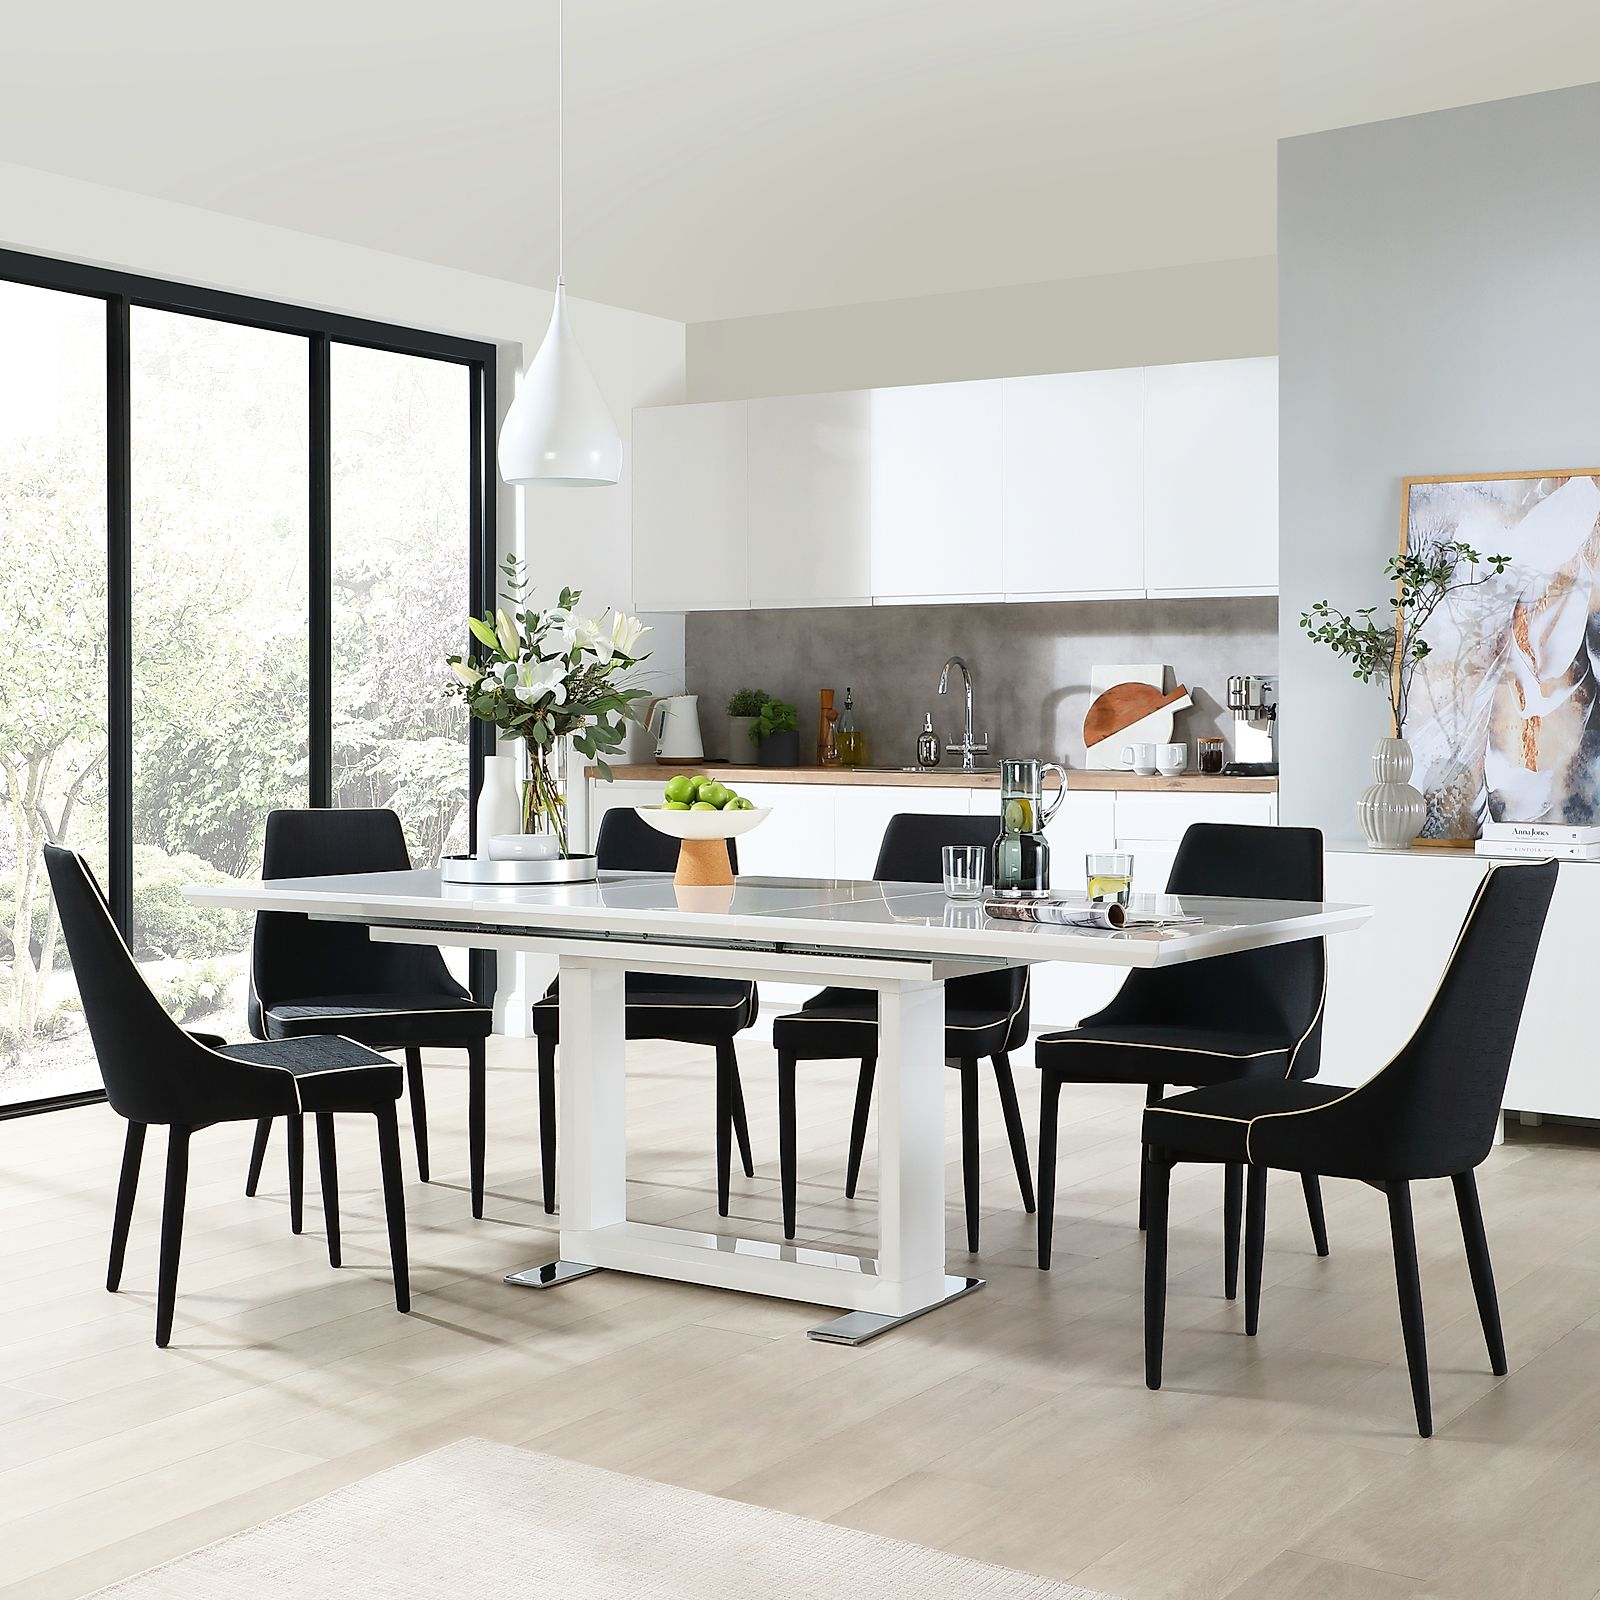 Tokyo White High Gloss Extending Dining Table With 6